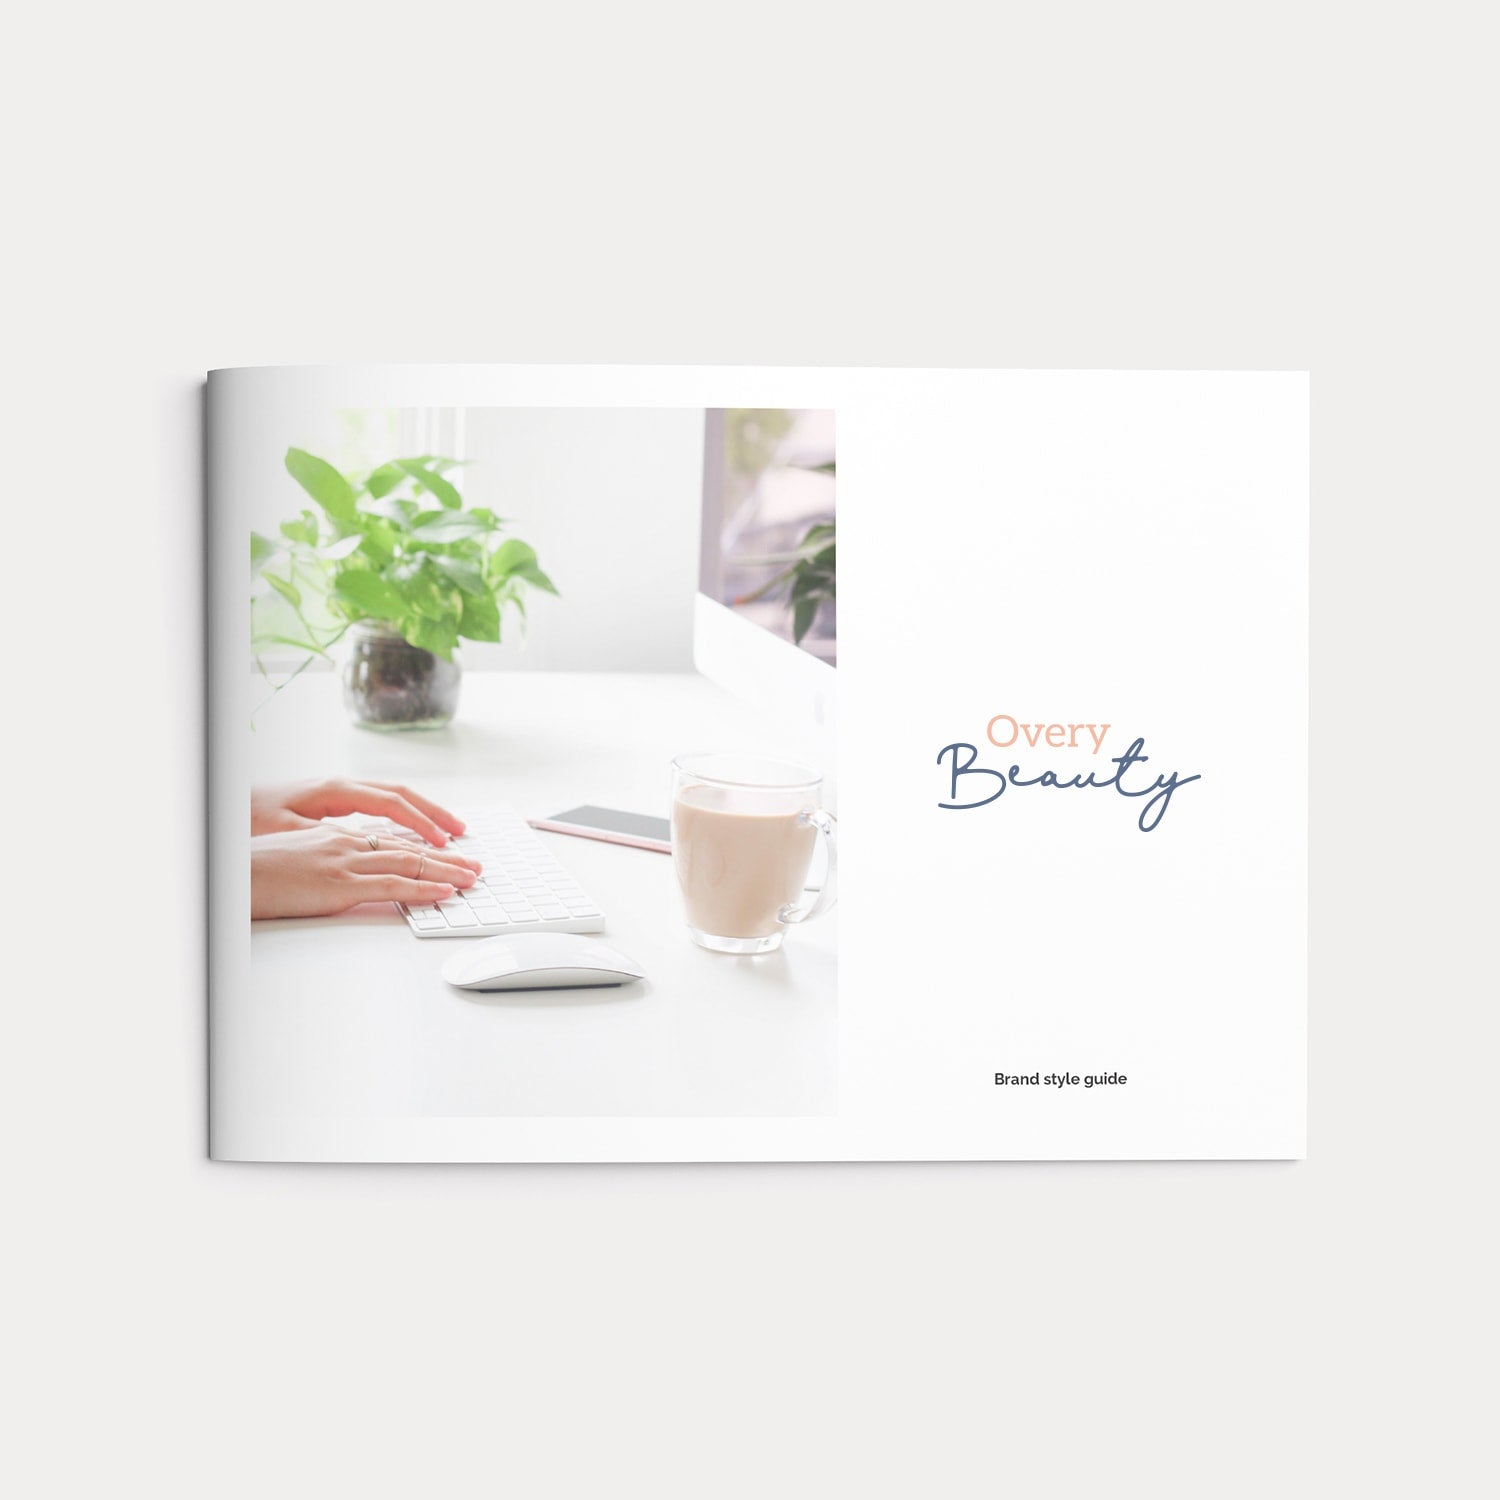 Overy Beauty Brand Guidelines_Copyright Tiny Crowd